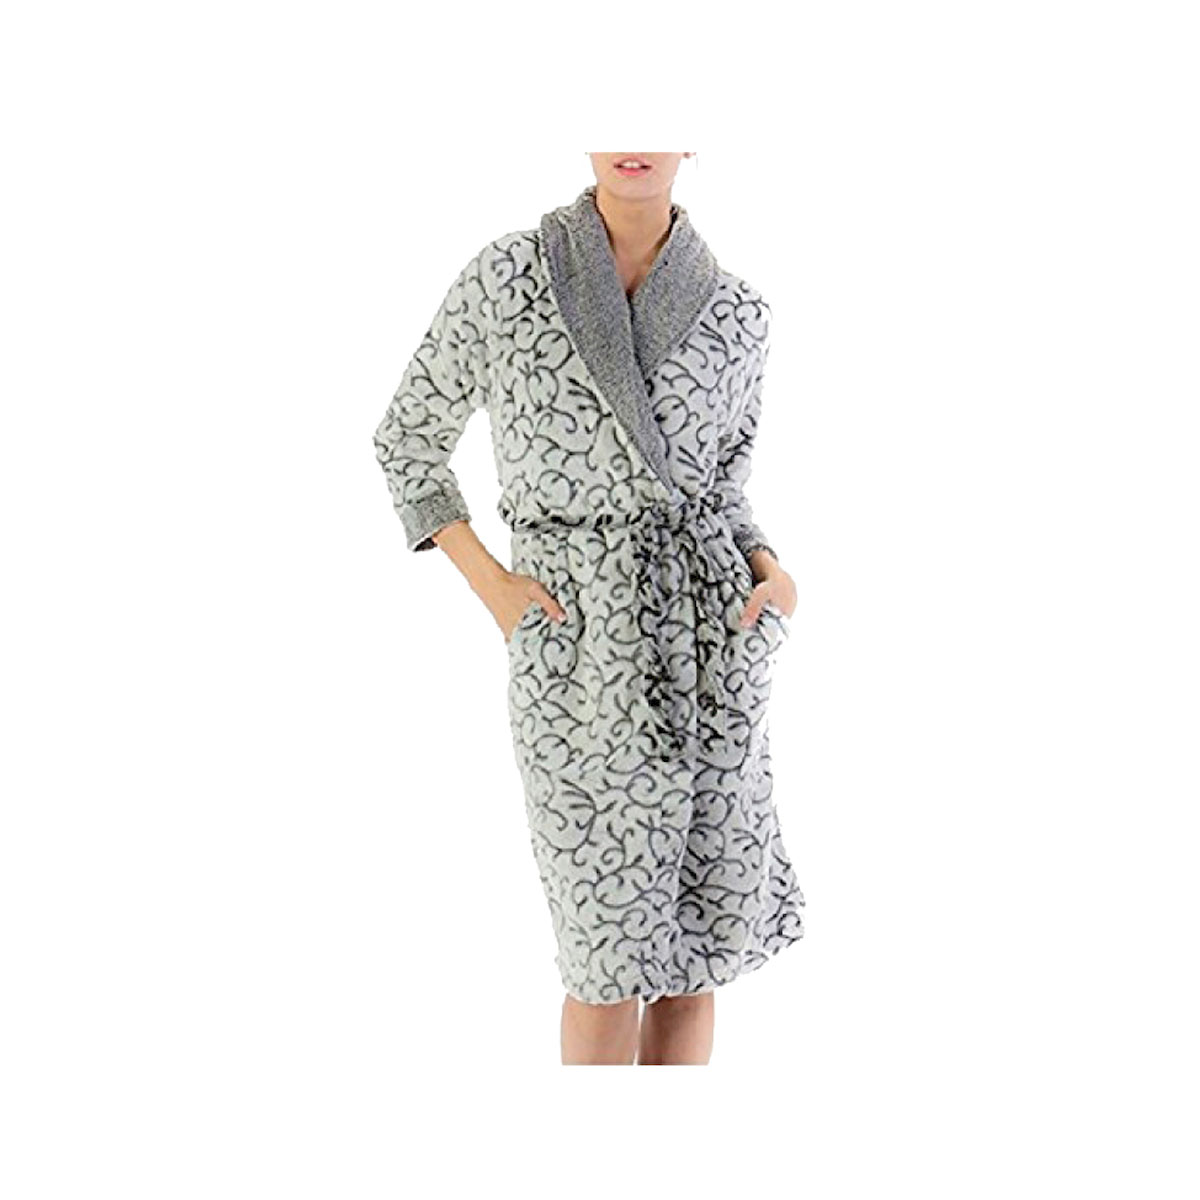 AMANDA PAIGE SLEEPWEAR 100% Polyester Gray Scroll Printed Robe (L)